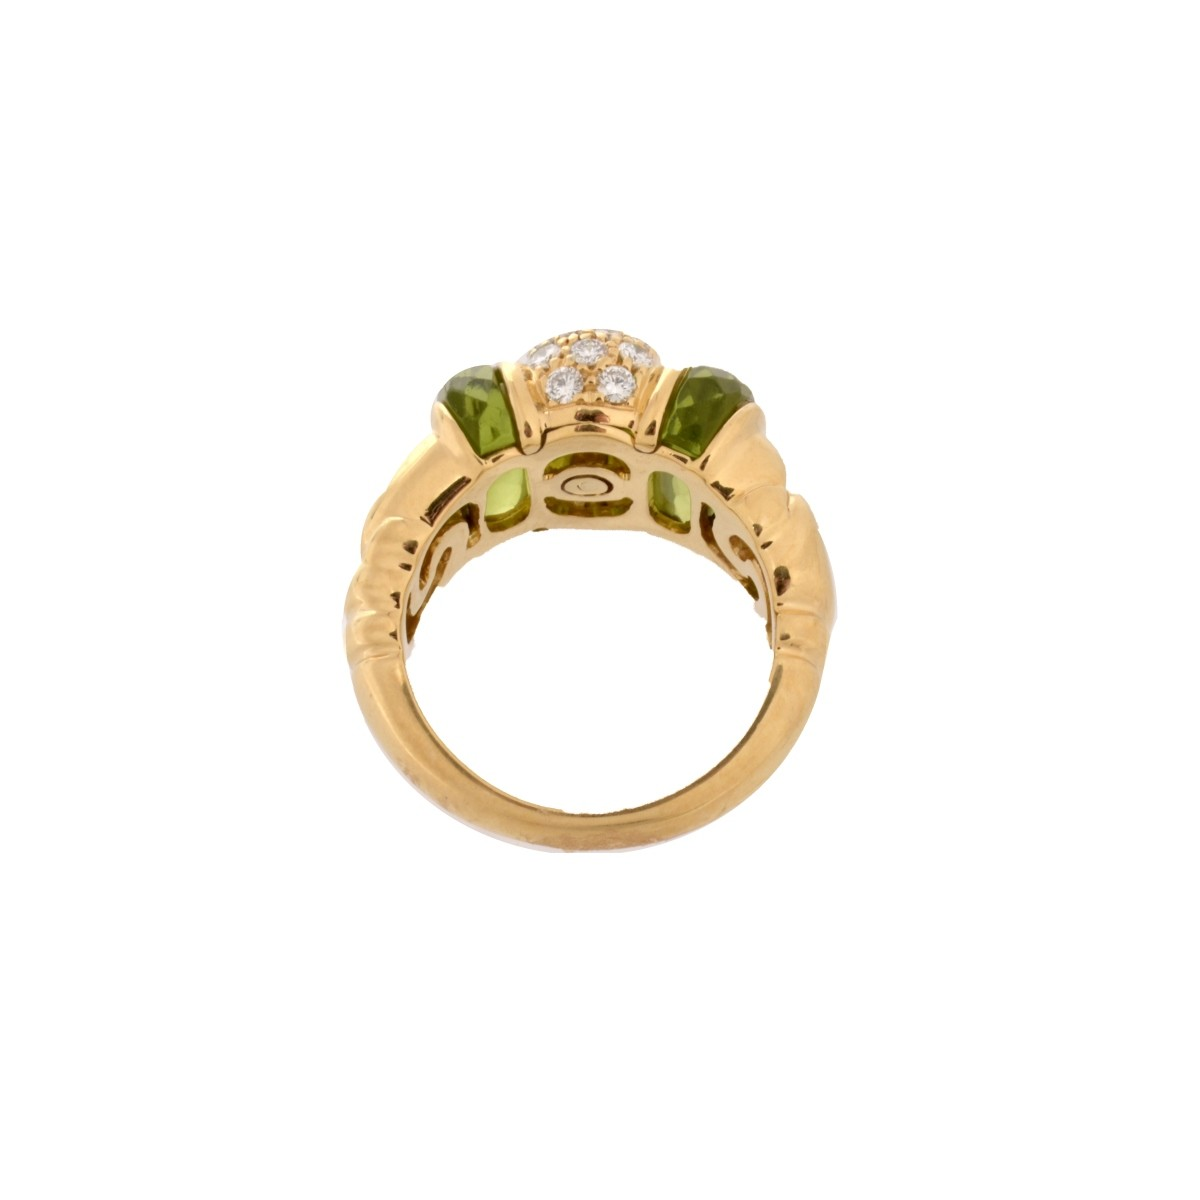 Bulgari Diamond, Peridot and 18K Ring